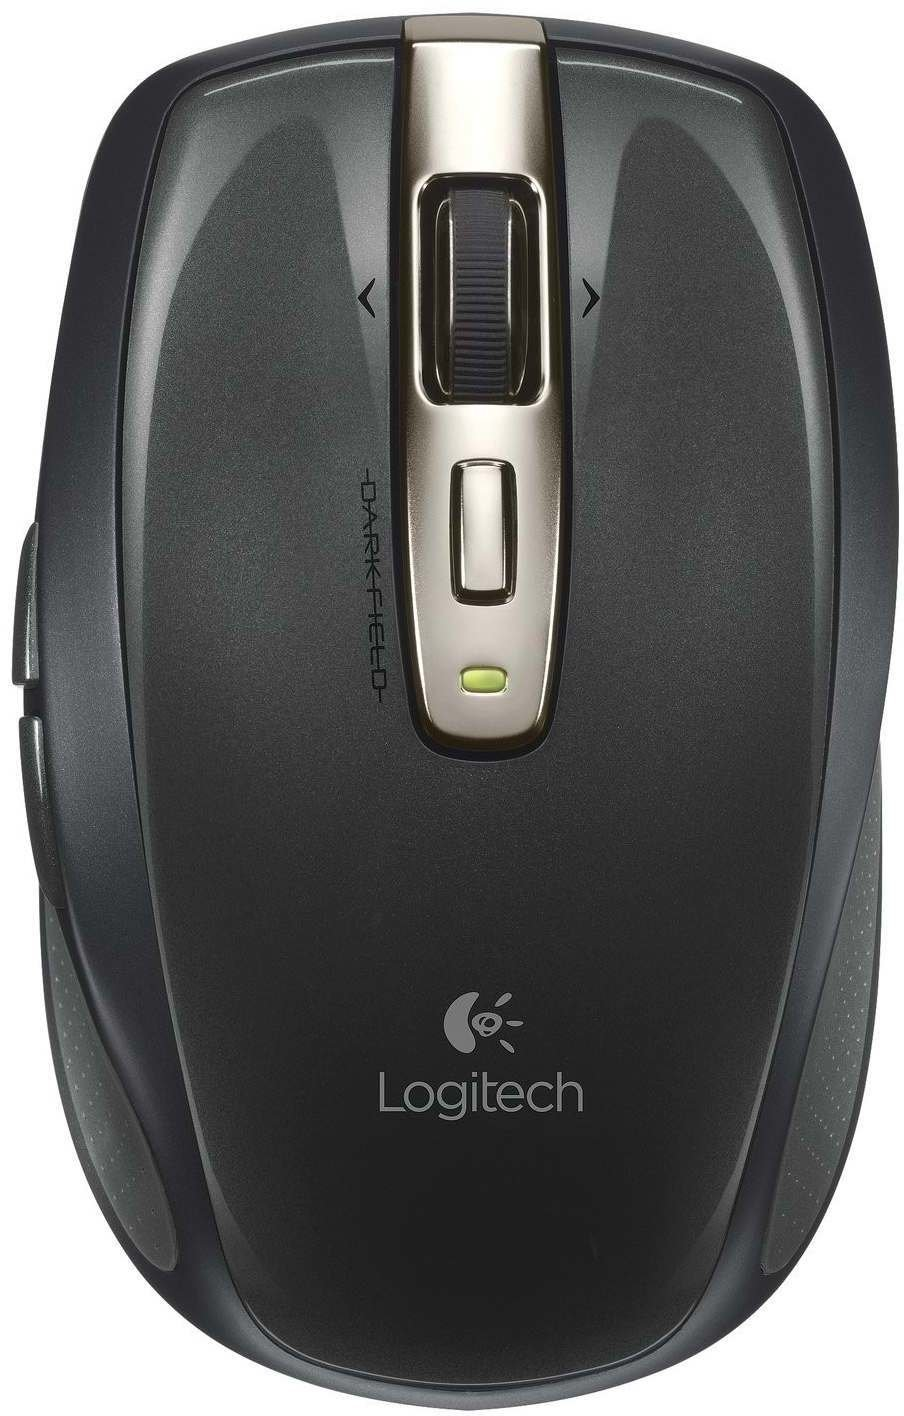 Logitech Anywhere Mouse MX (910-002899) Test | Wireless Maus